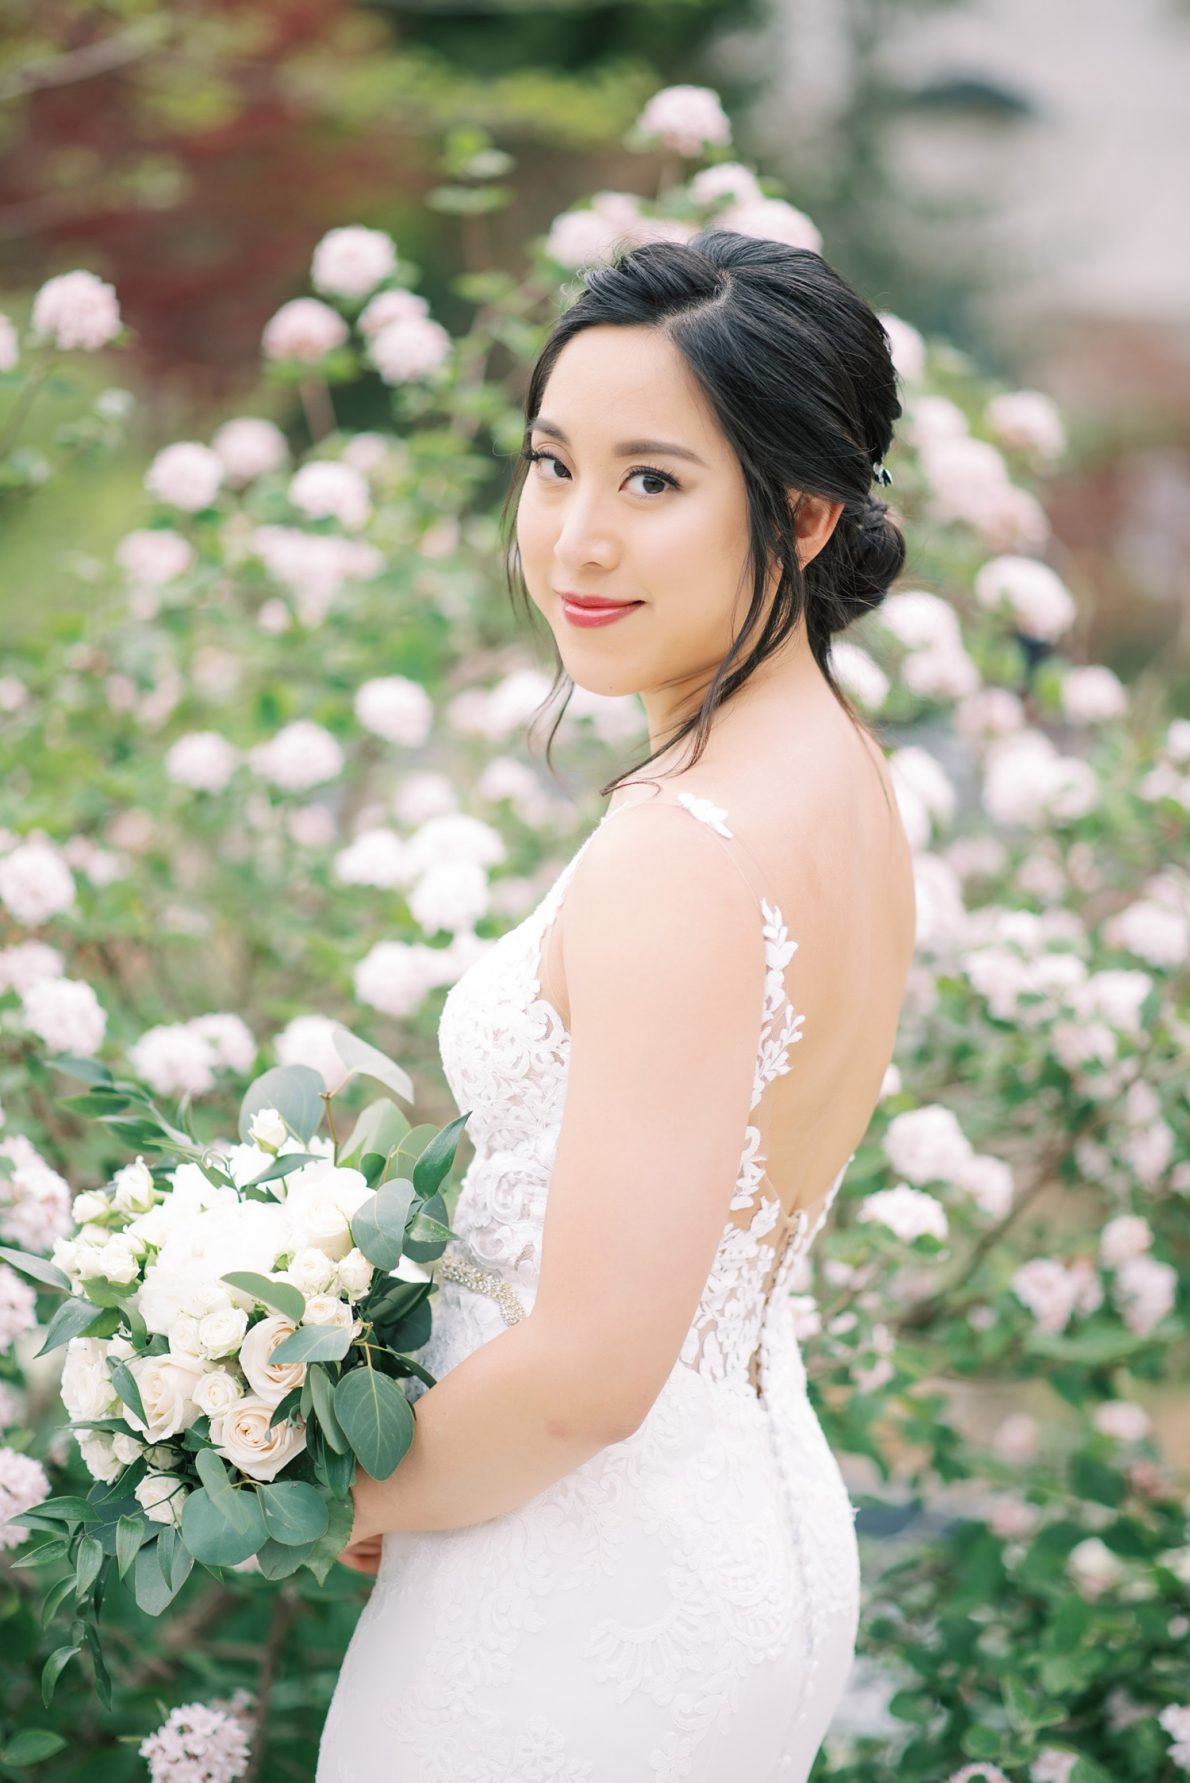 Chinese bride at Edwards Garden and Toronto Botanical Garden Wedding Photos